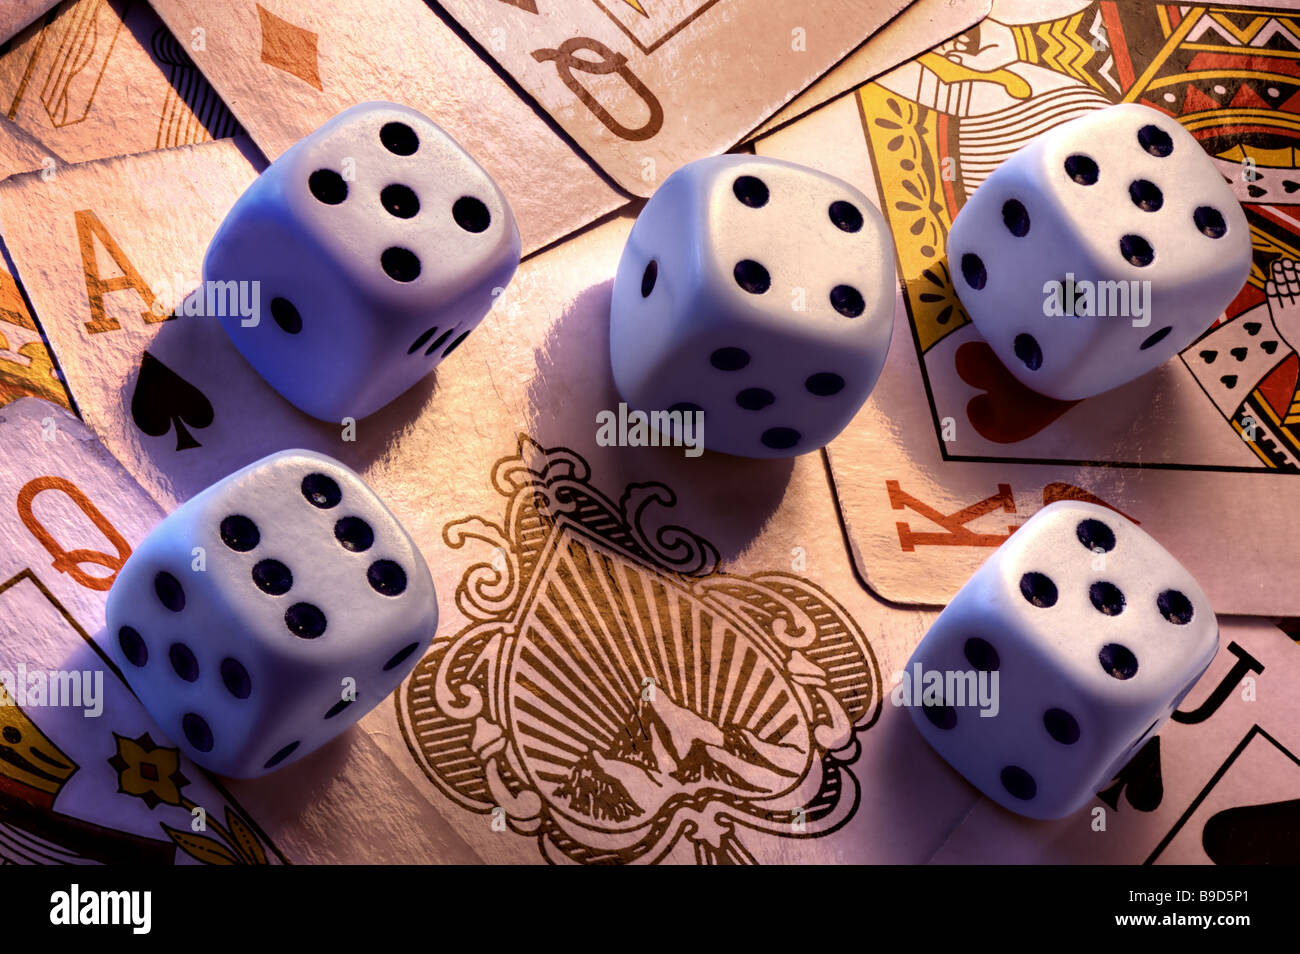 5 dice on playing cardsStock Photo